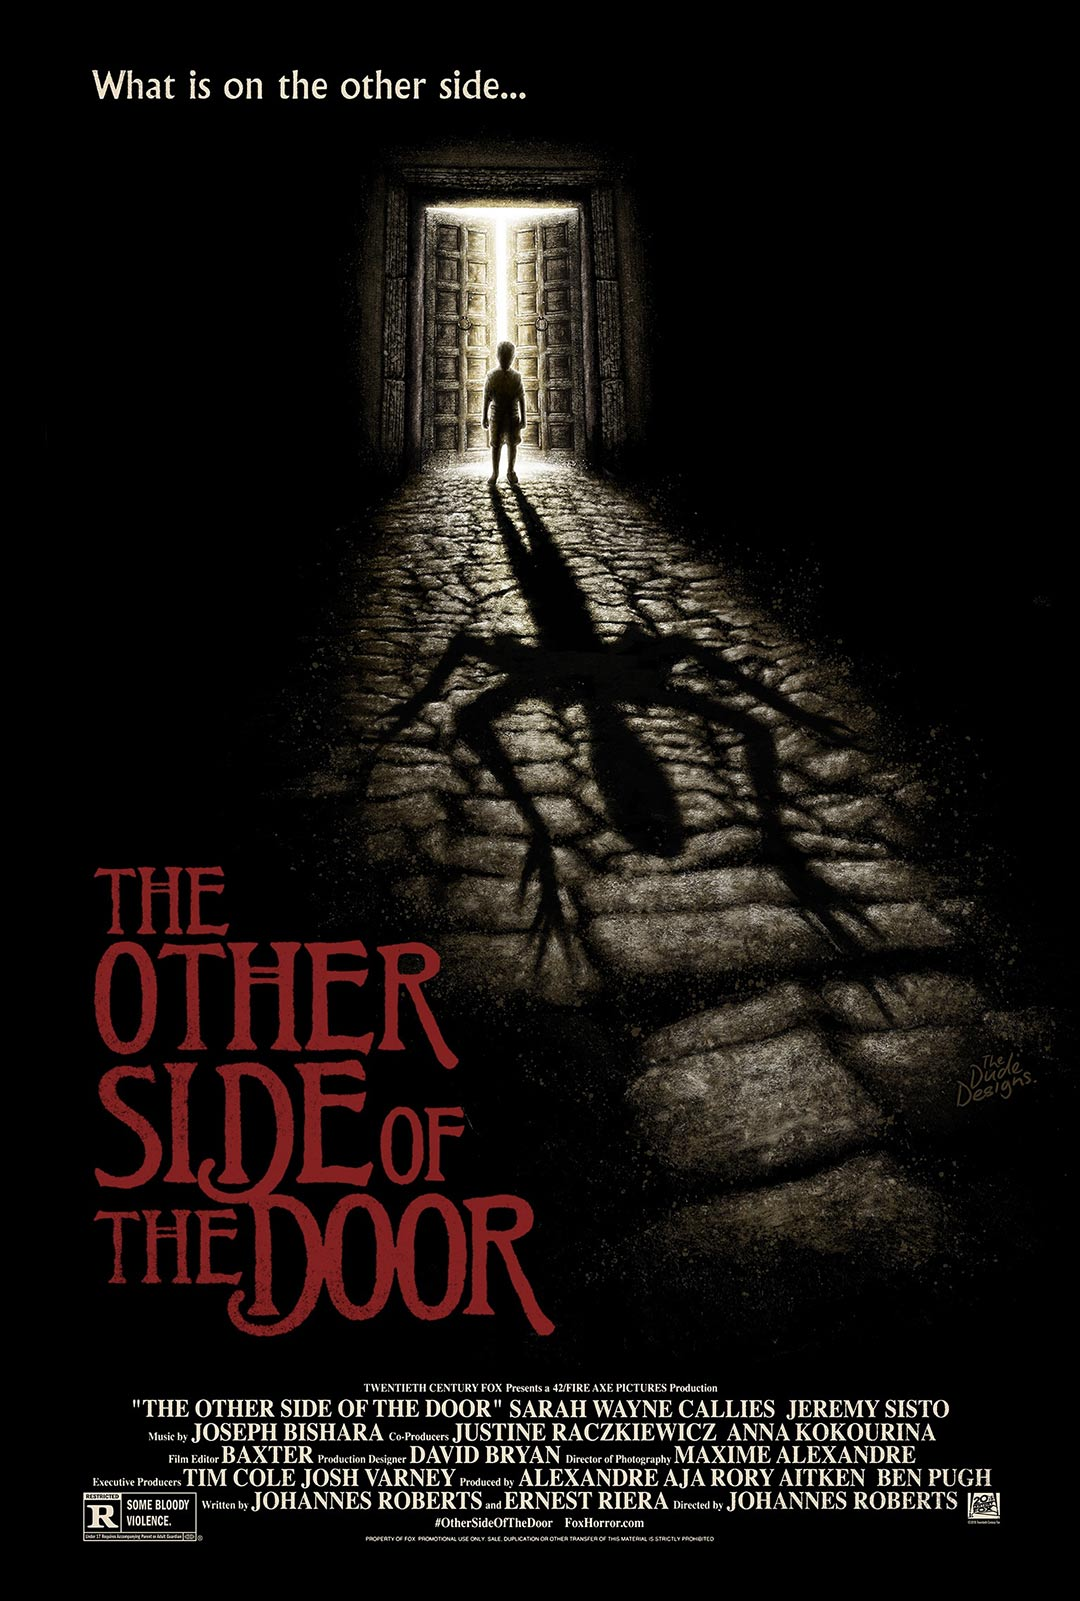 ... The Other Side of the Door Poster #4 & The Other Side of the Door (2016) Poster #4 - Trailer Addict pezcame.com